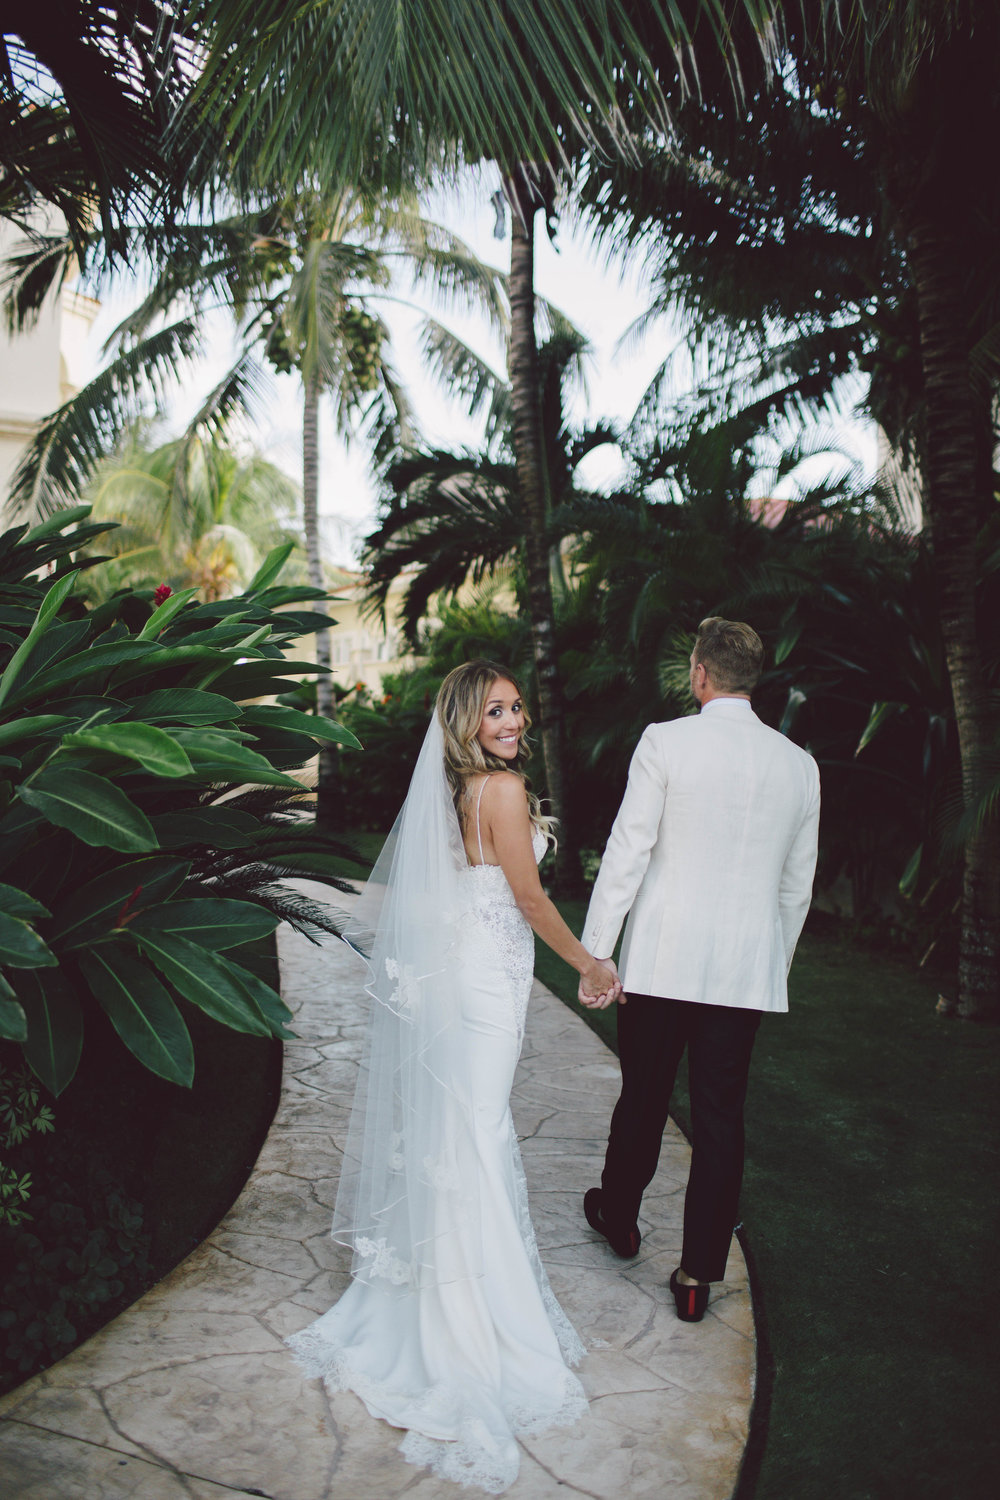 mexico_wedding_cancun_villa_la_joya_evangeline_lane_097.jpg